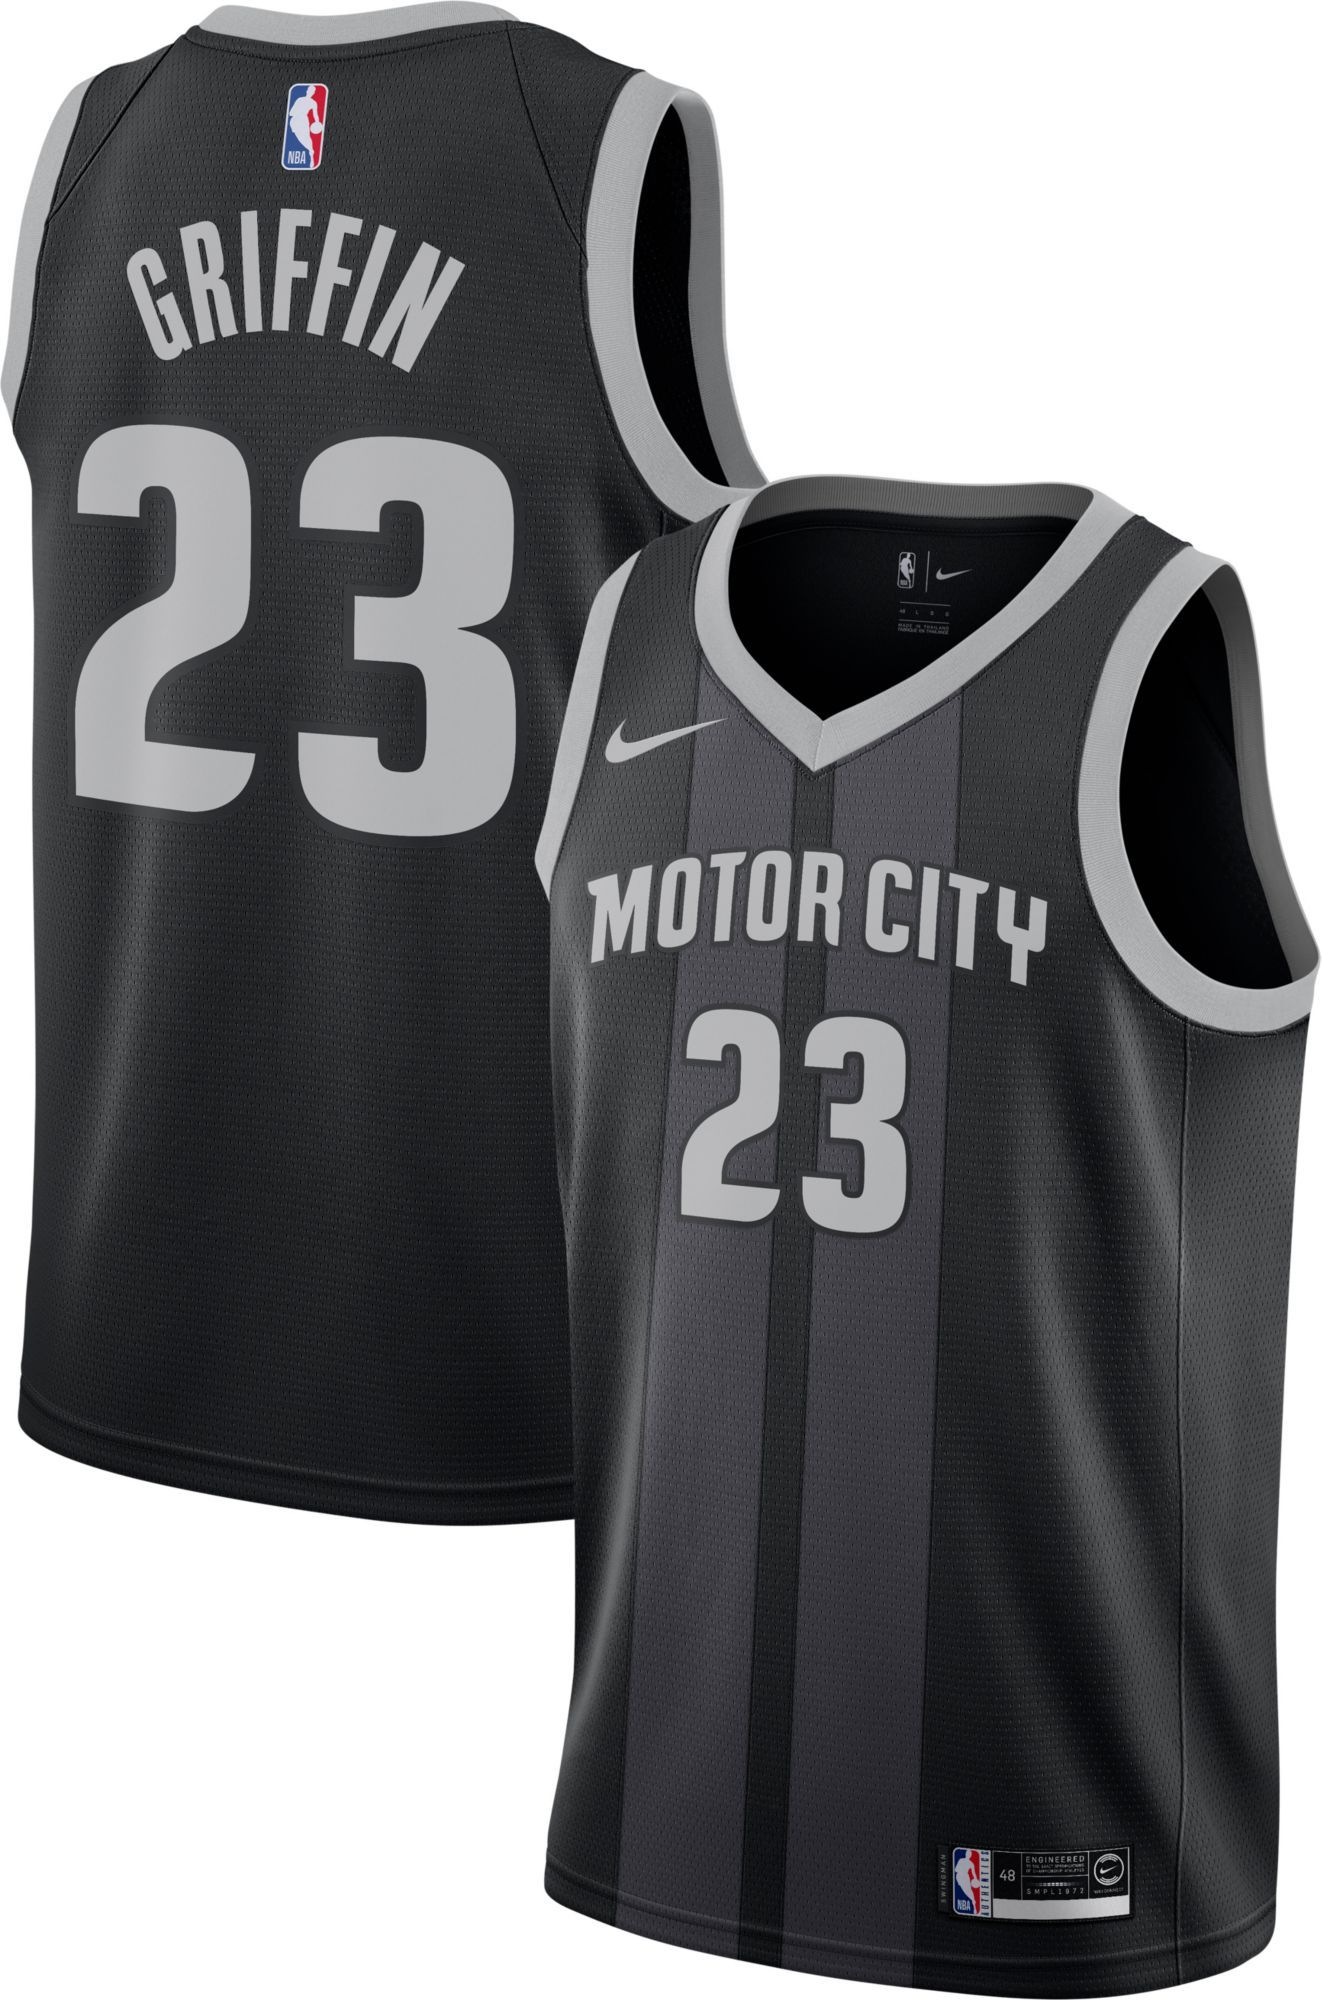 e7c2de27cee Nike Men s Detroit Pistons Blake Griffin Dri-FIT City Edition Swingman  Jersey